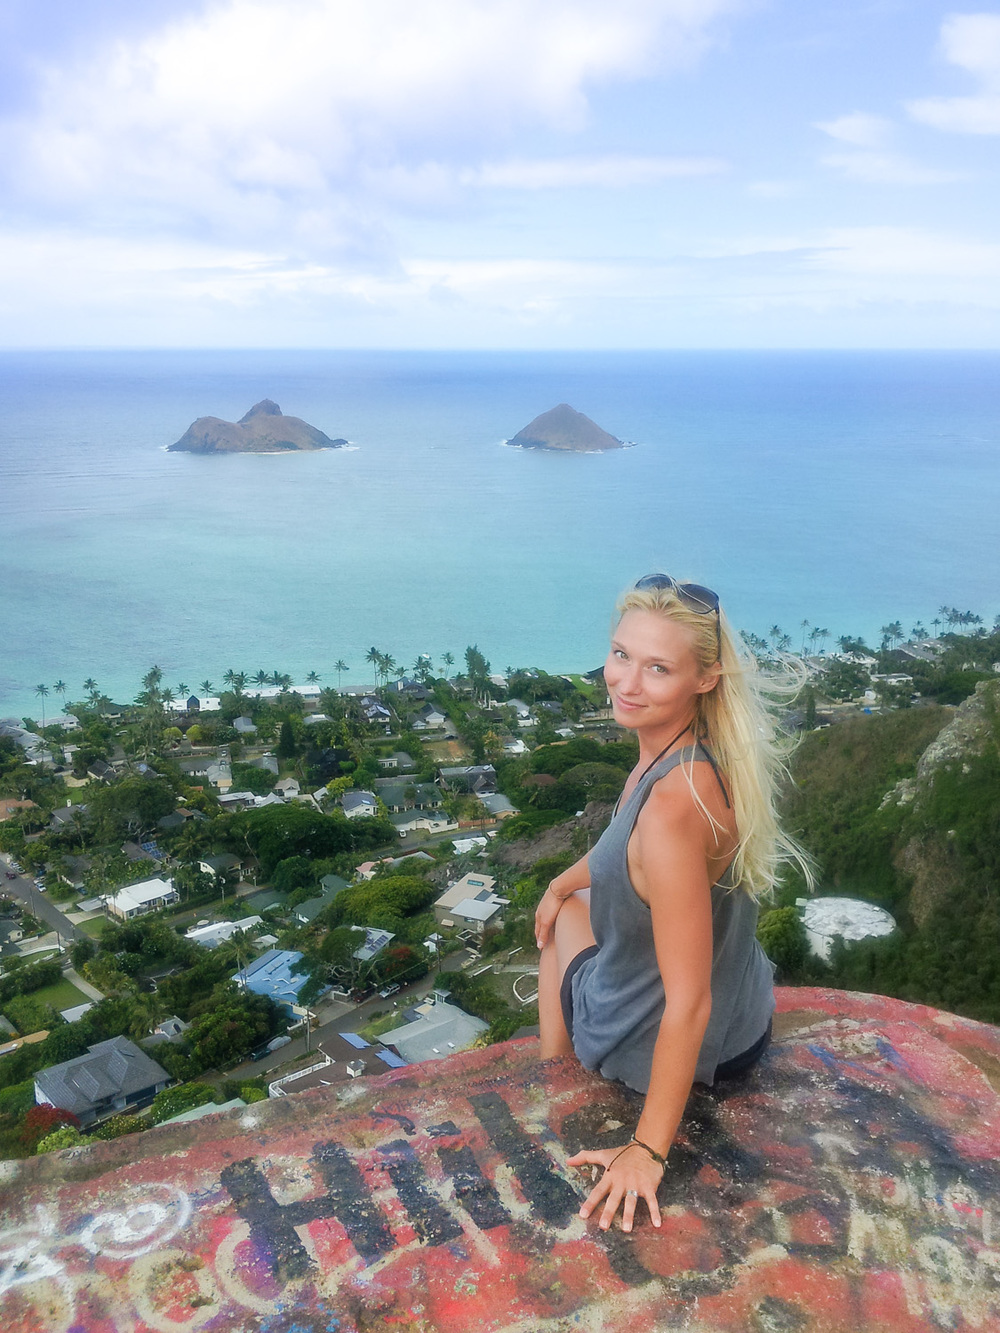 Christian-Schaffer-Hawaii-Beach-Lanikai-Pillbox-Hike.jpg